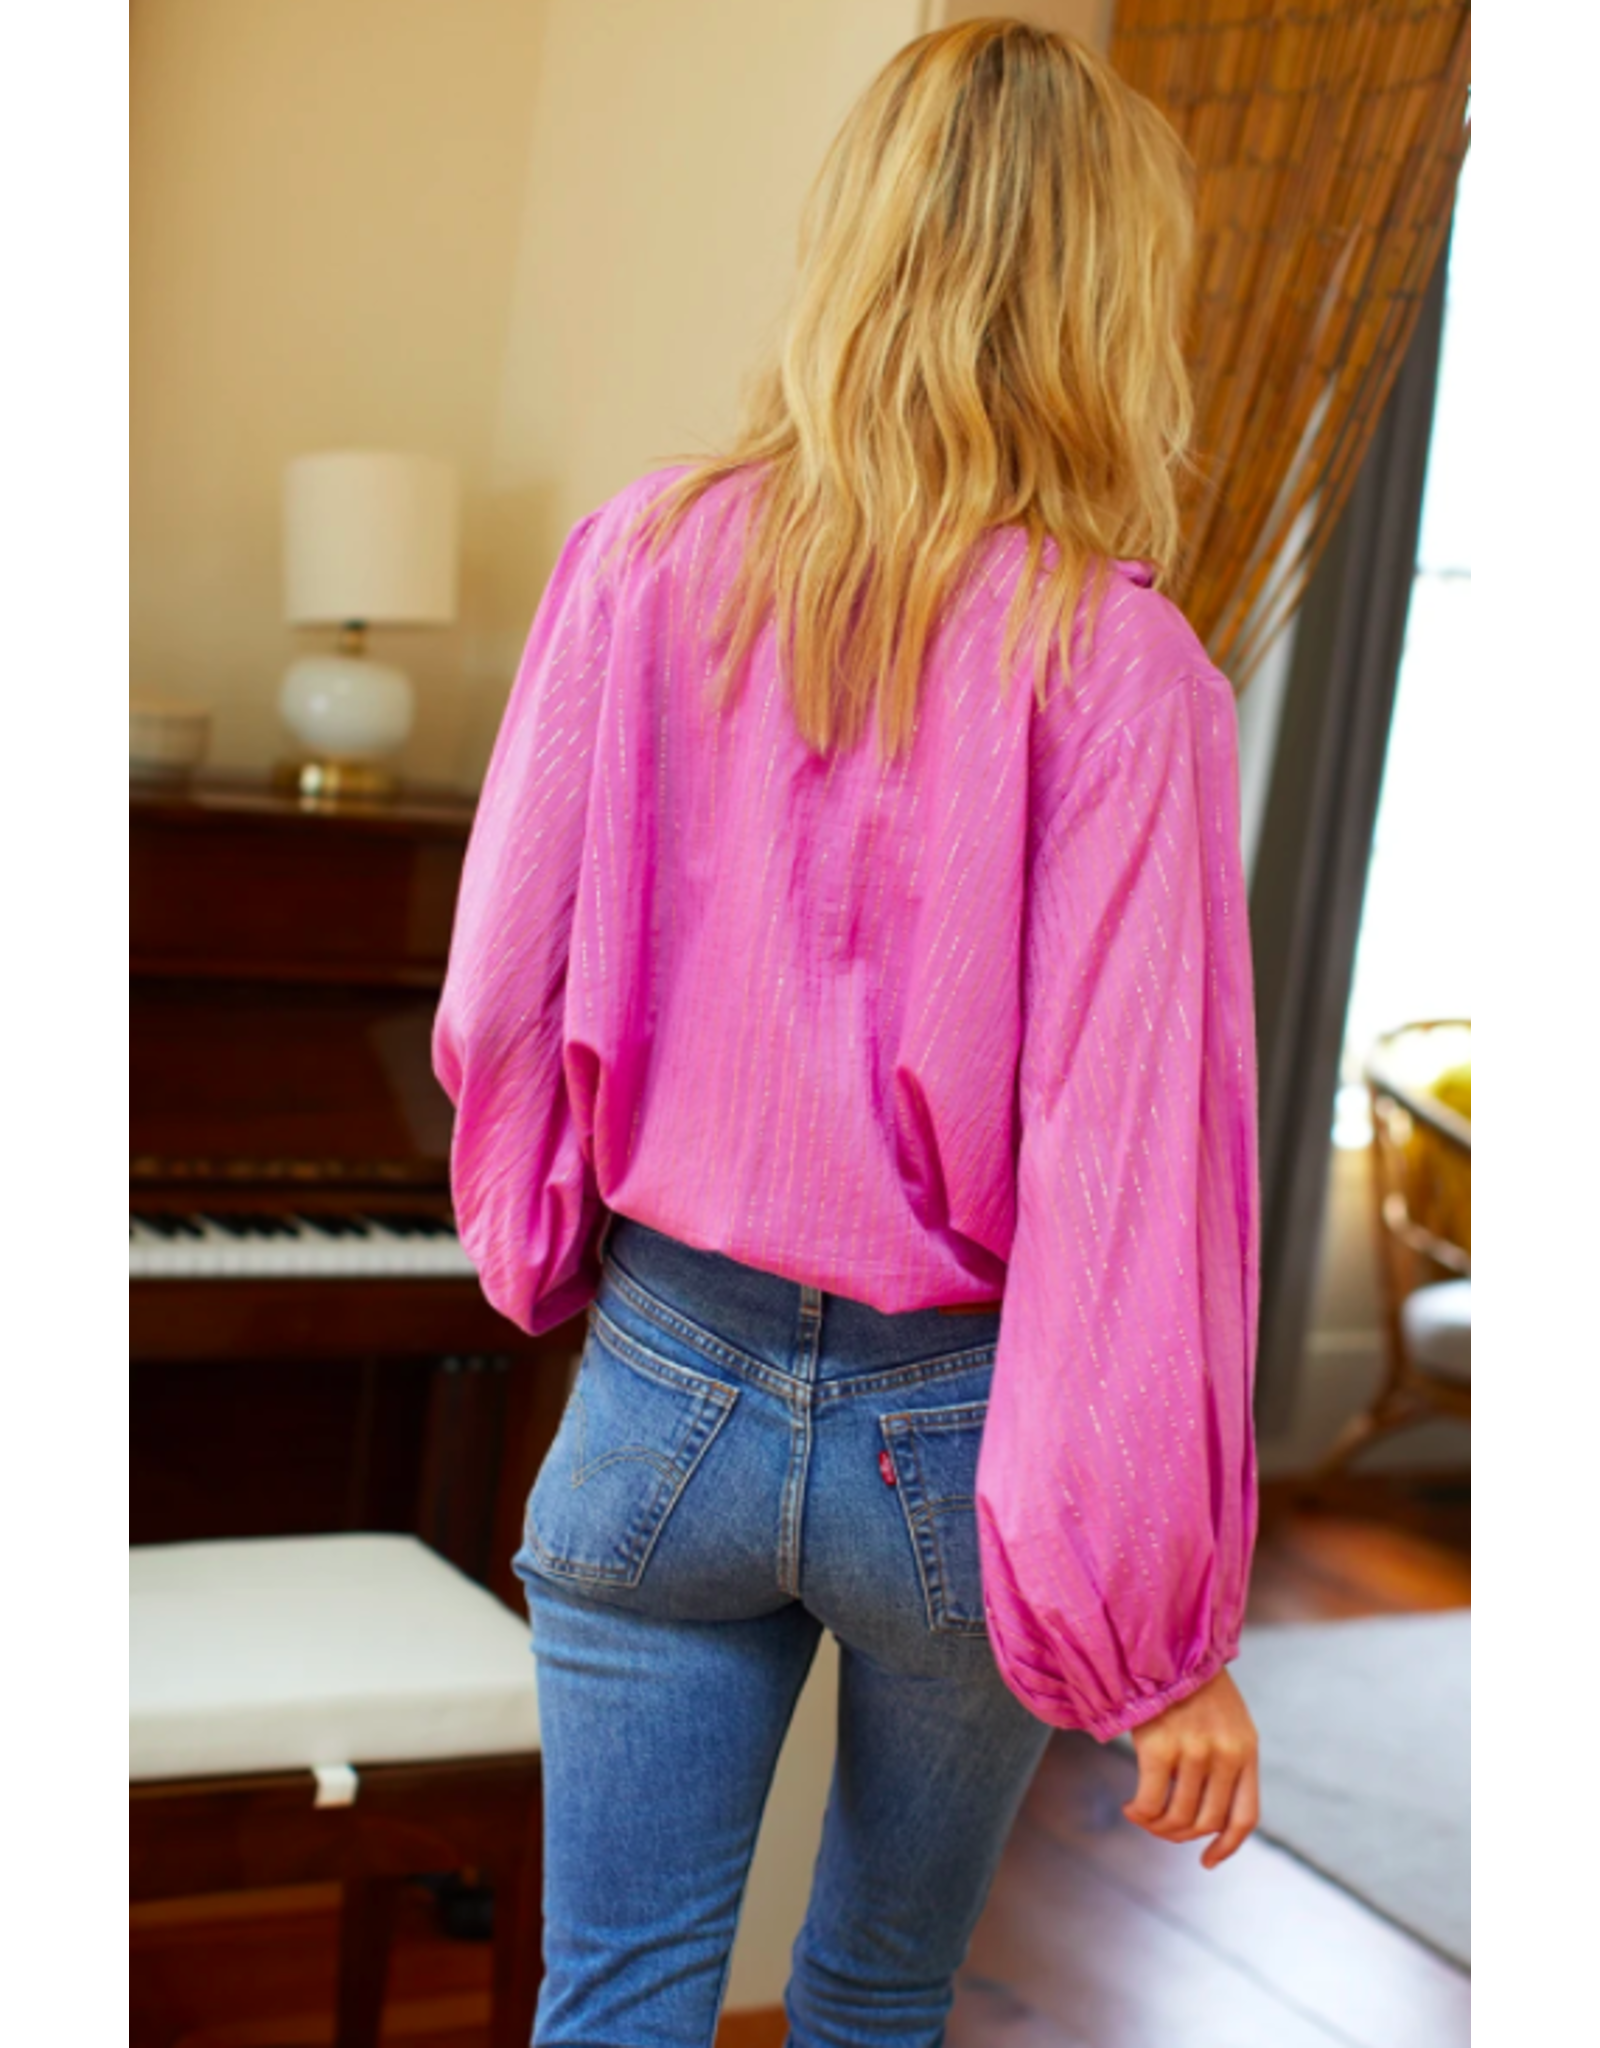 Emerson Fry Bardot Top in Pink Lurex